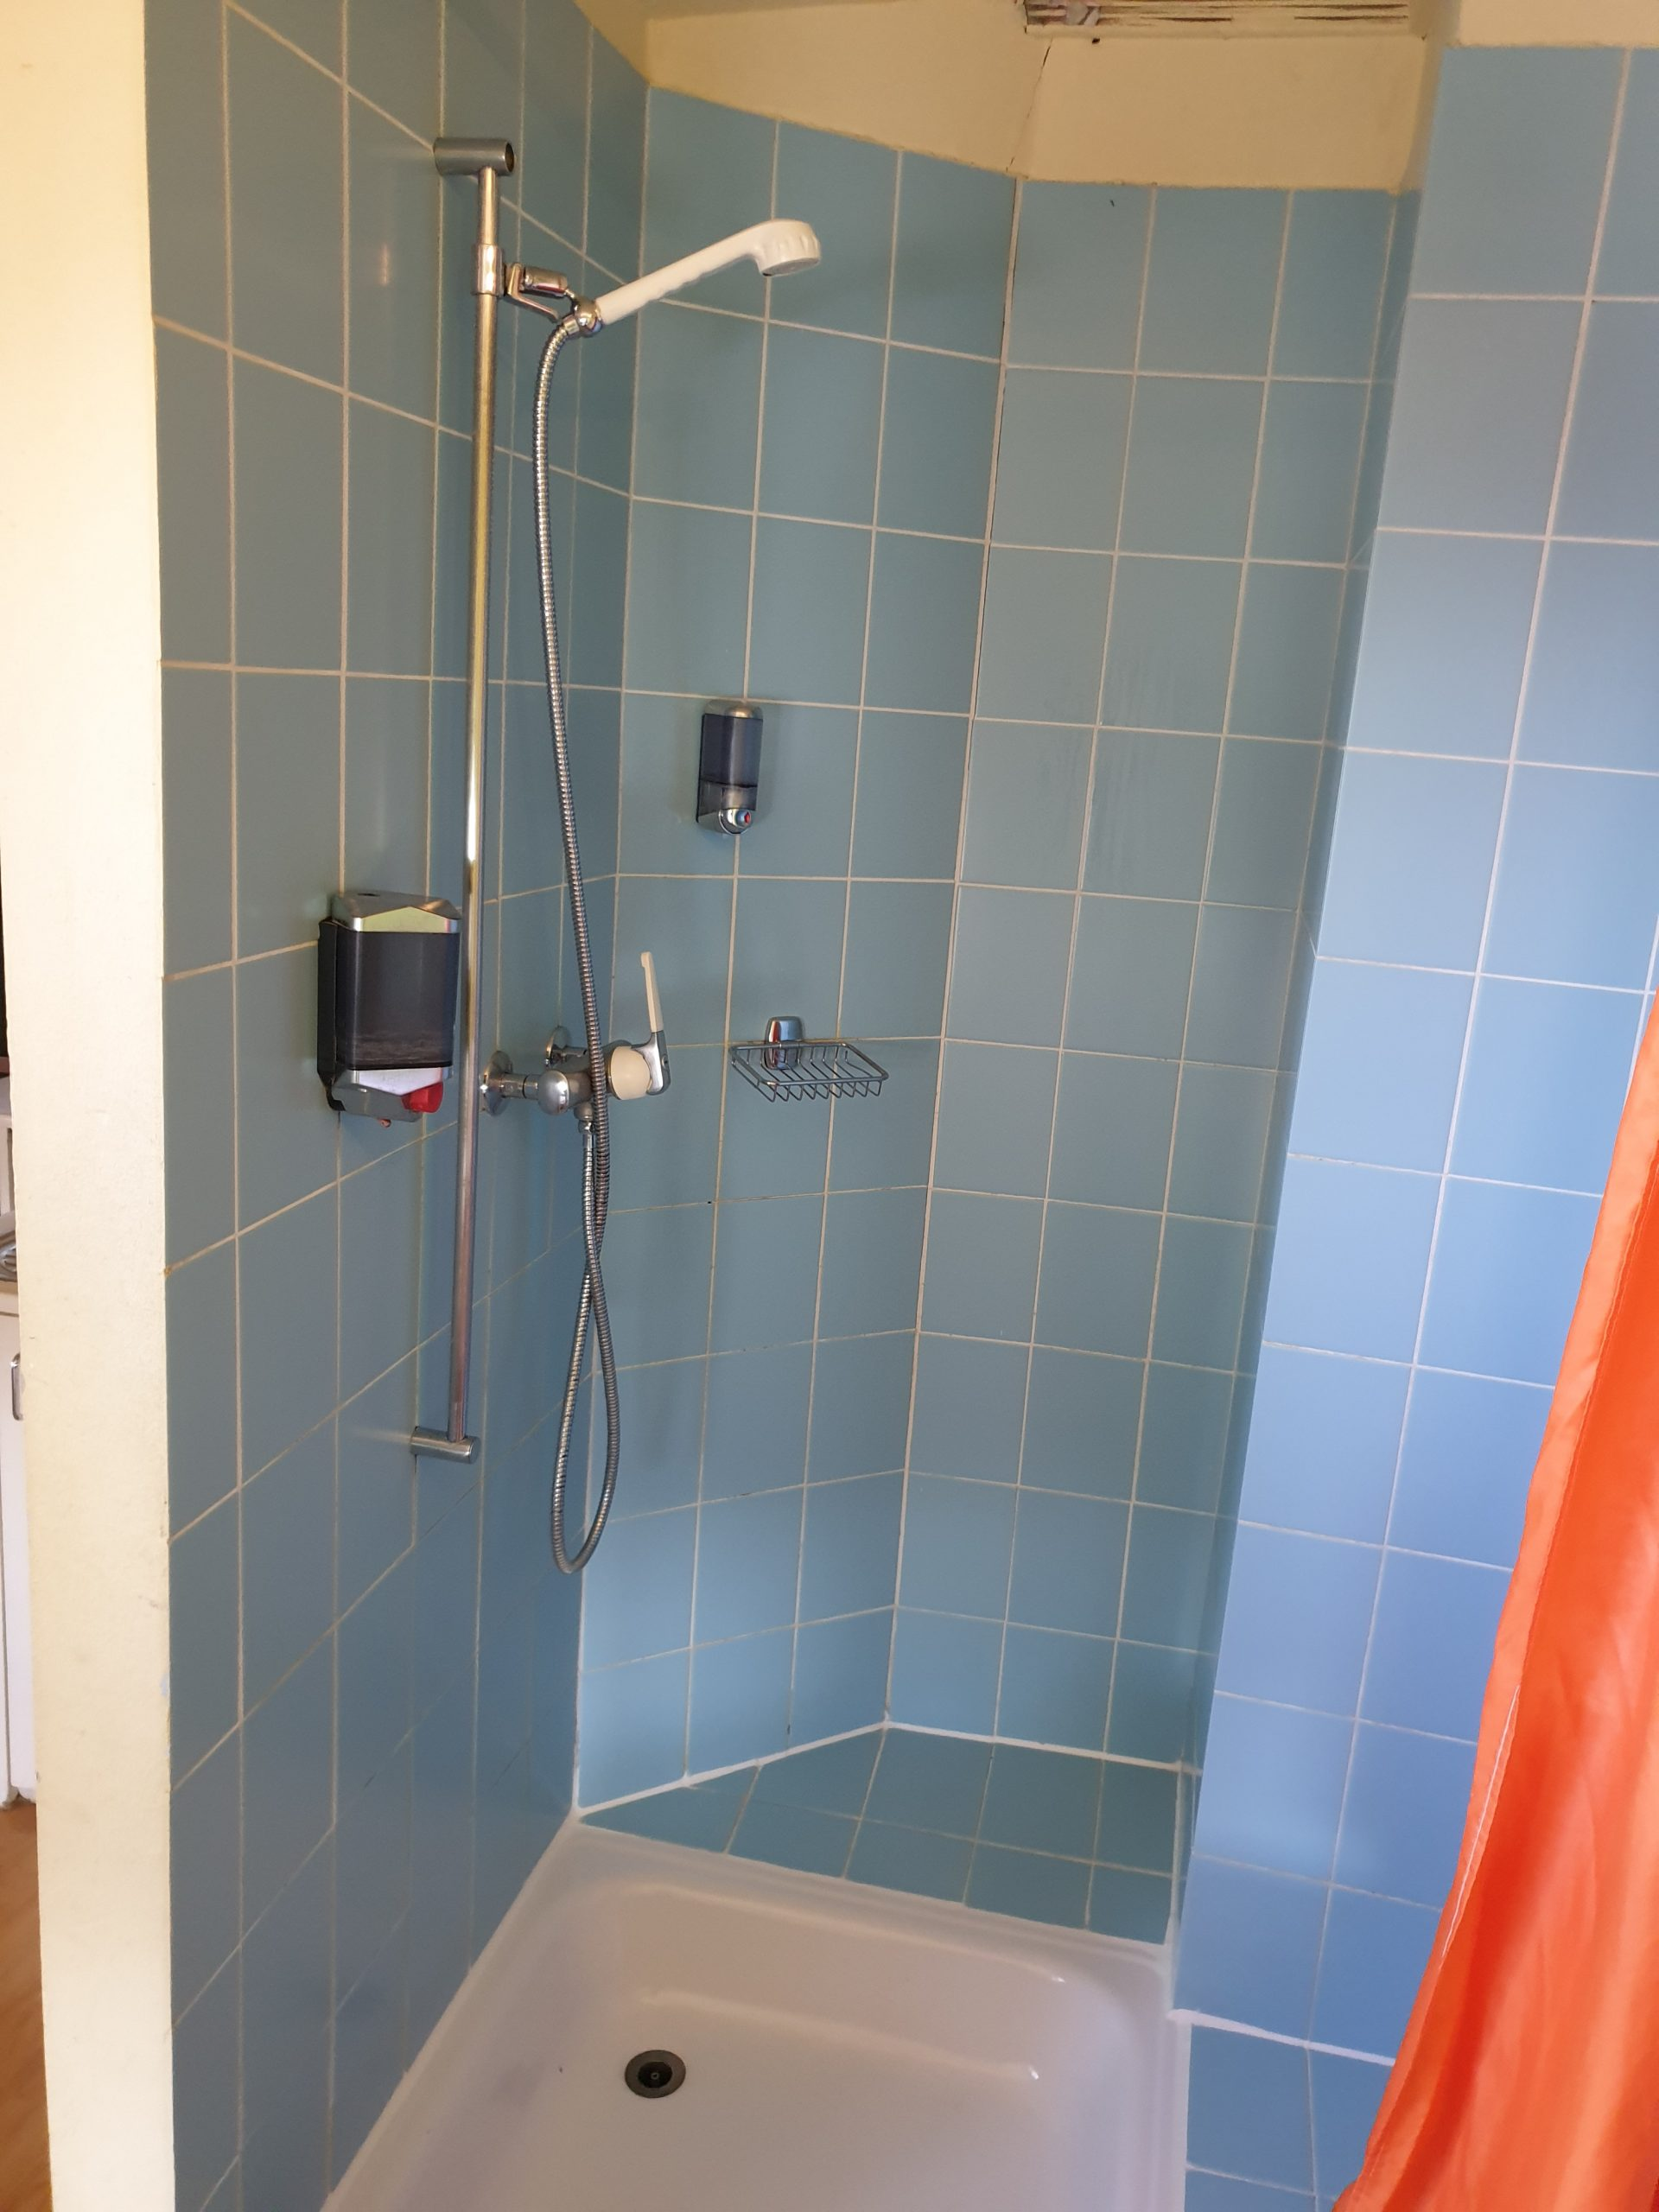 Apartment - shower, room 63